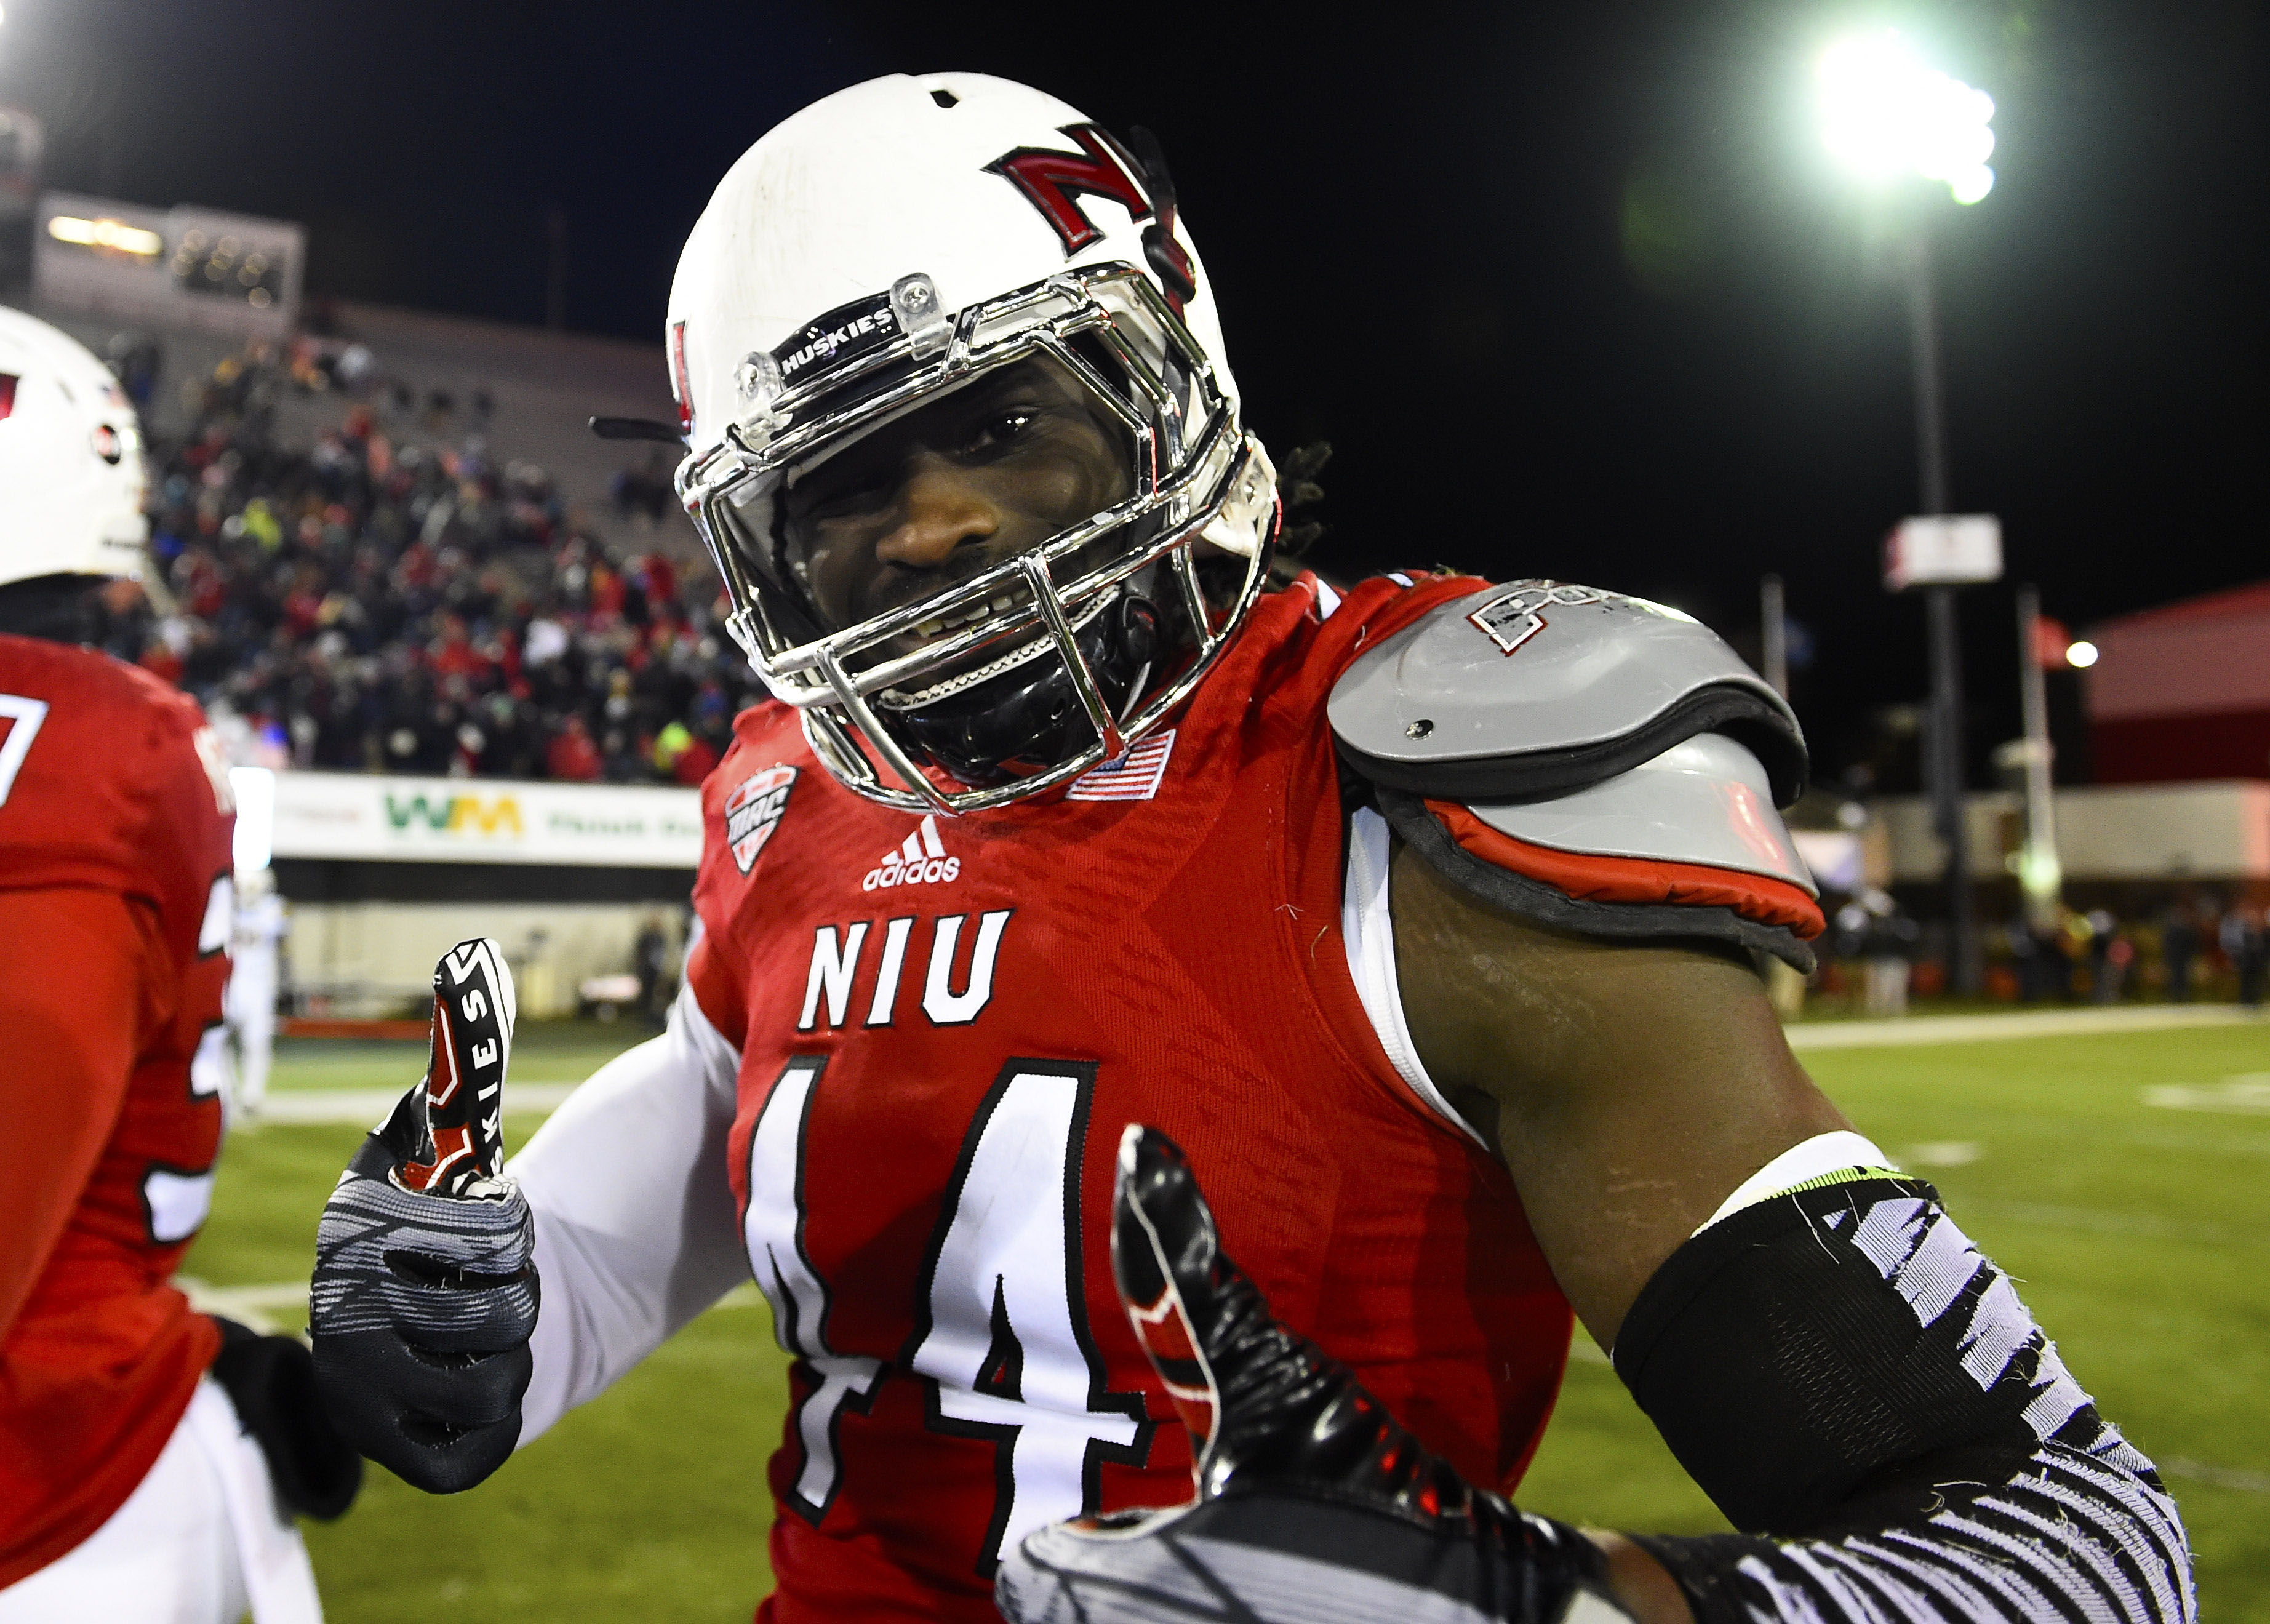 the big 2015 northern illinois football guide: still the king until